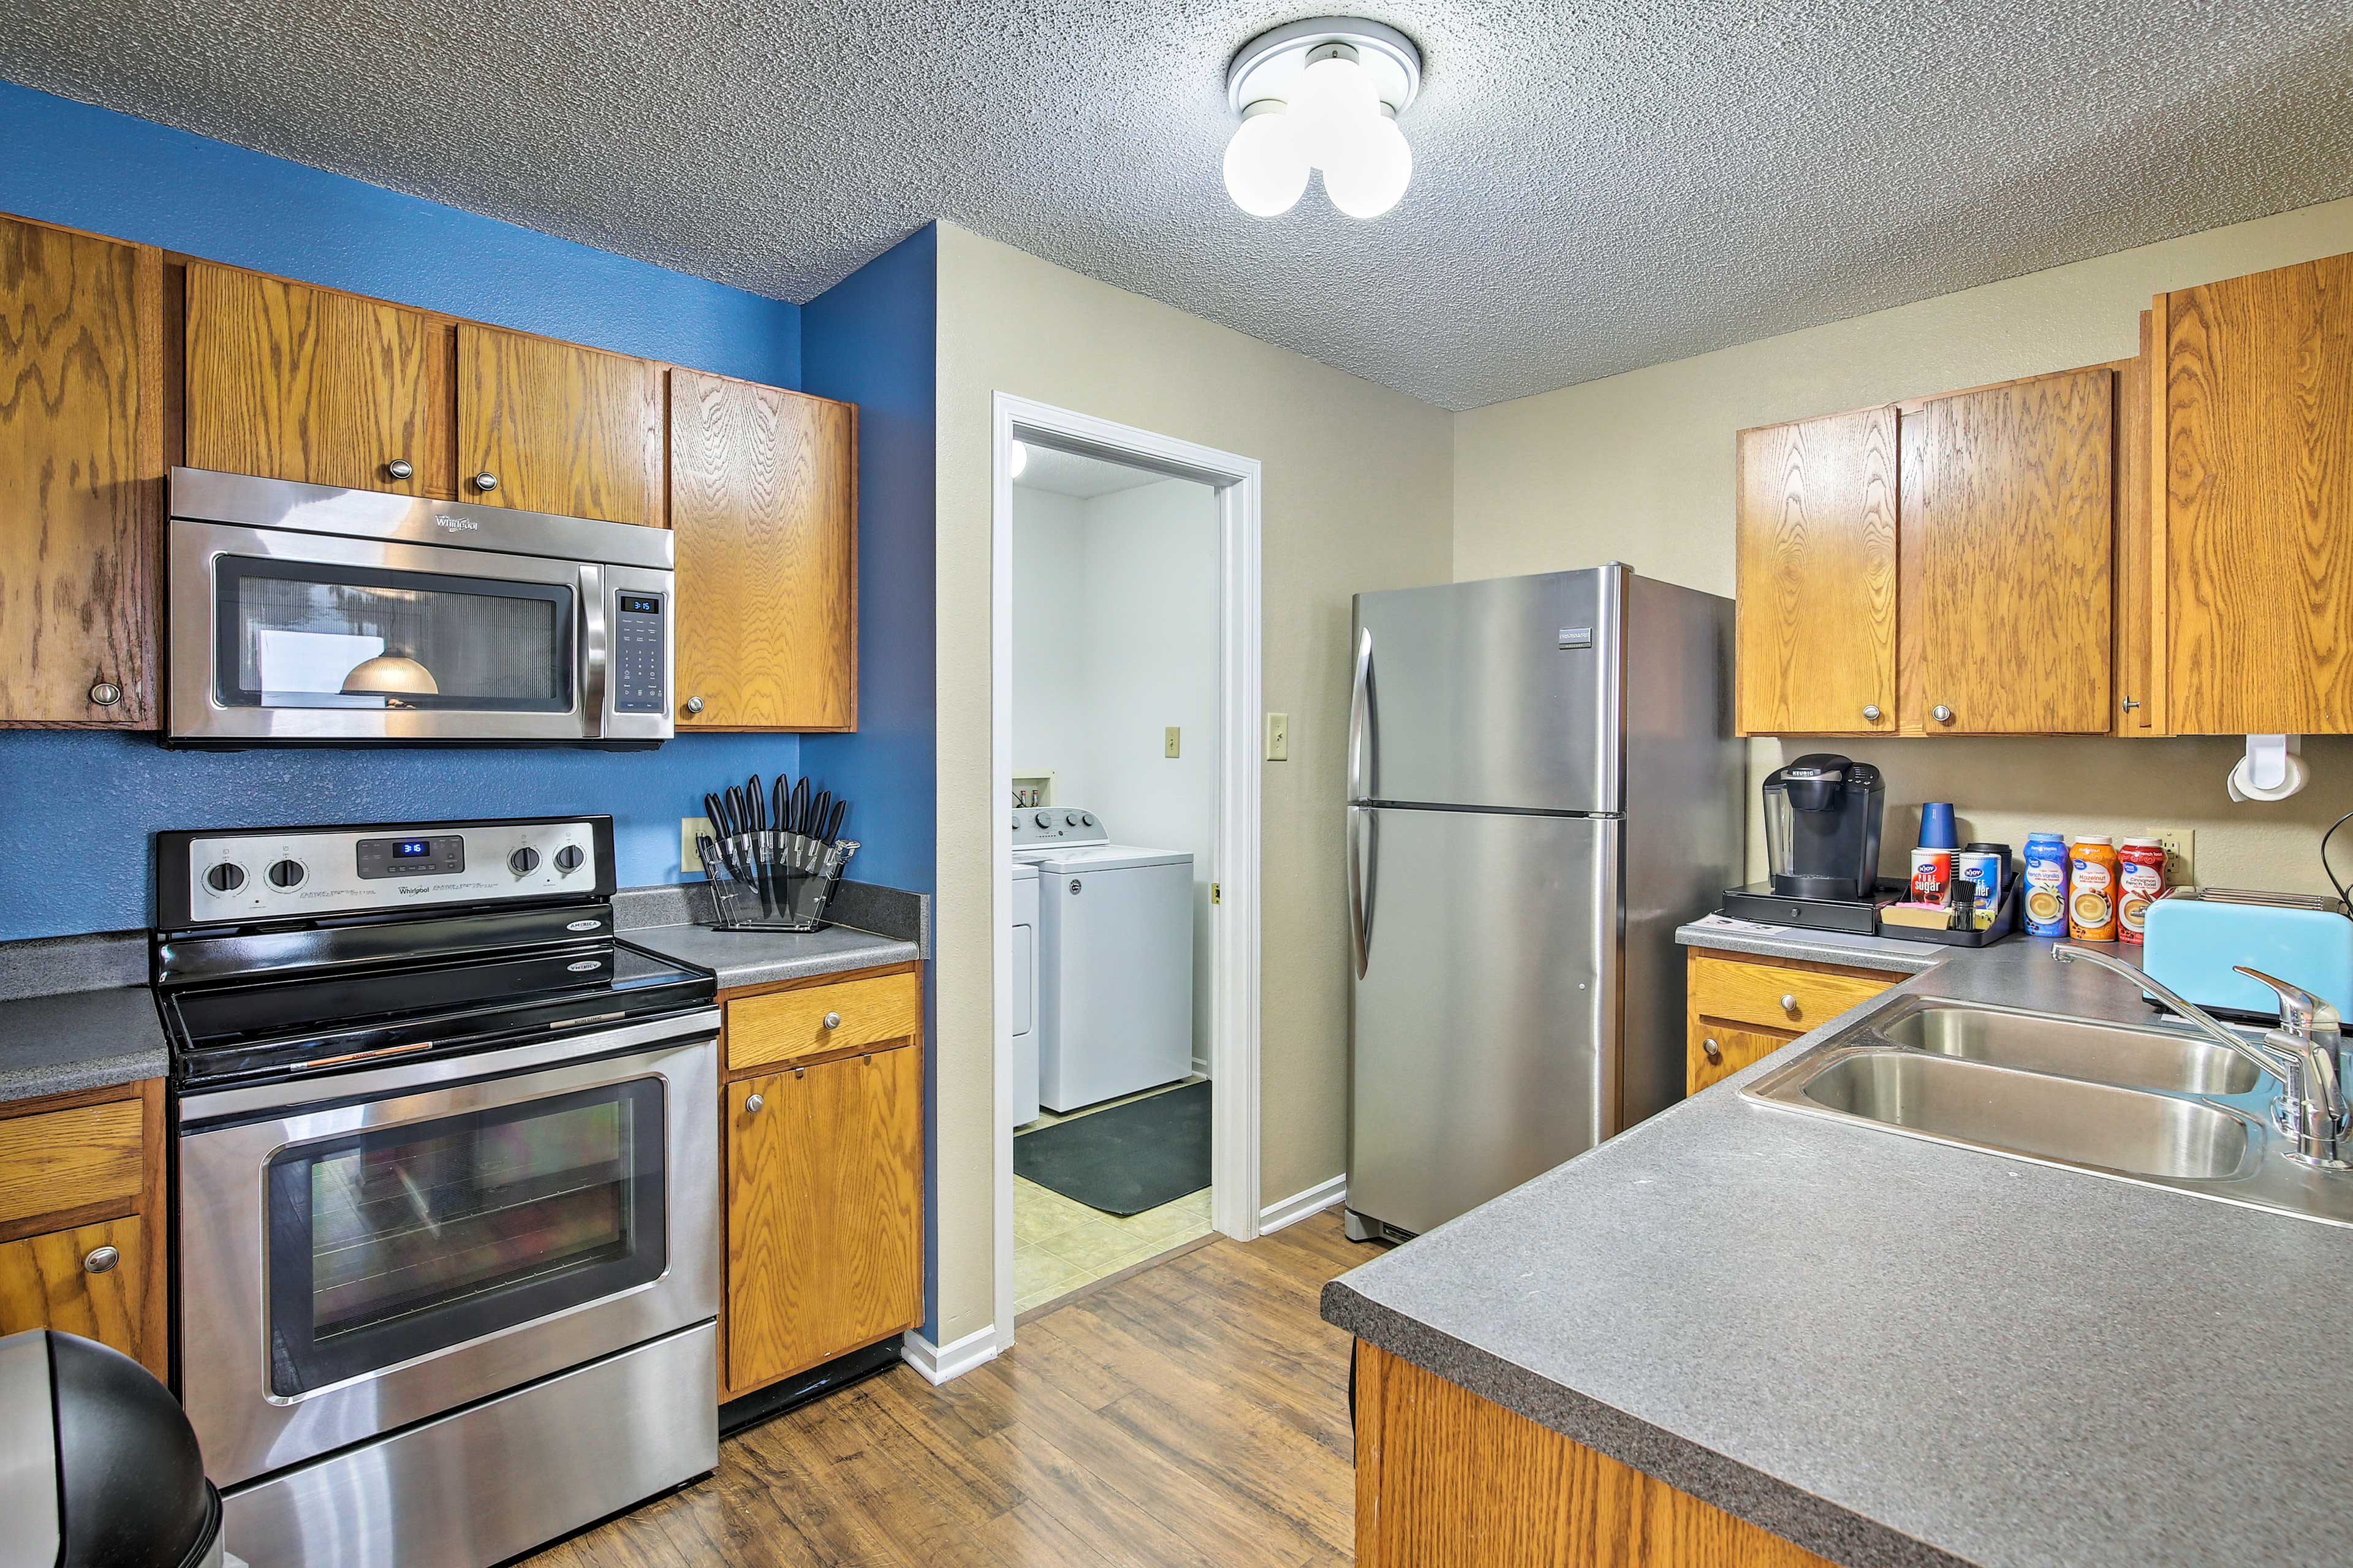 The kitchen is complete with stainless steel appliances.